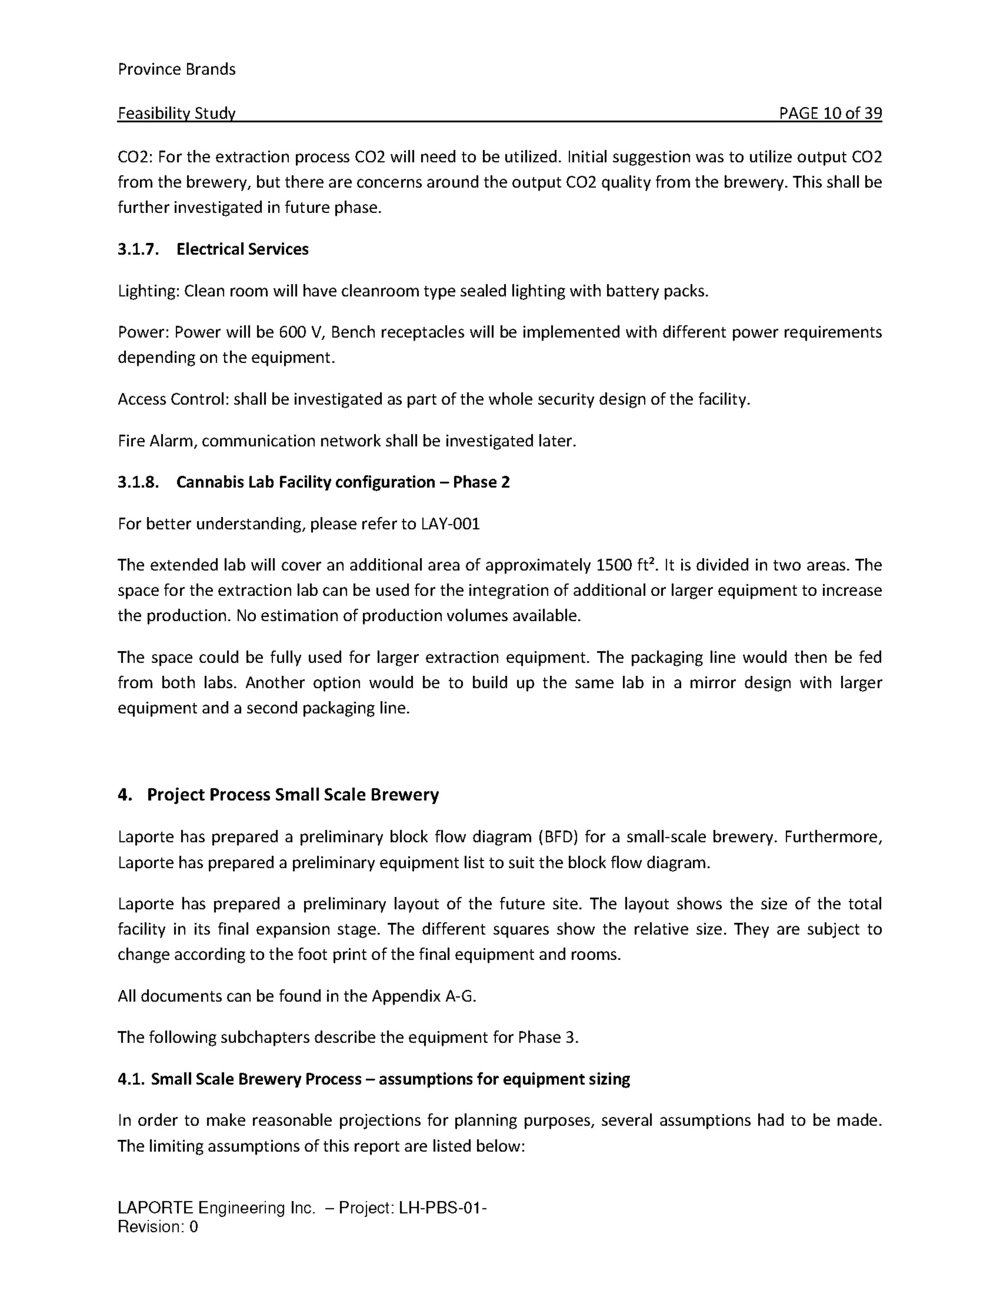 LH-PBS-01_Feasibility Study Report_01_Page_10.jpg